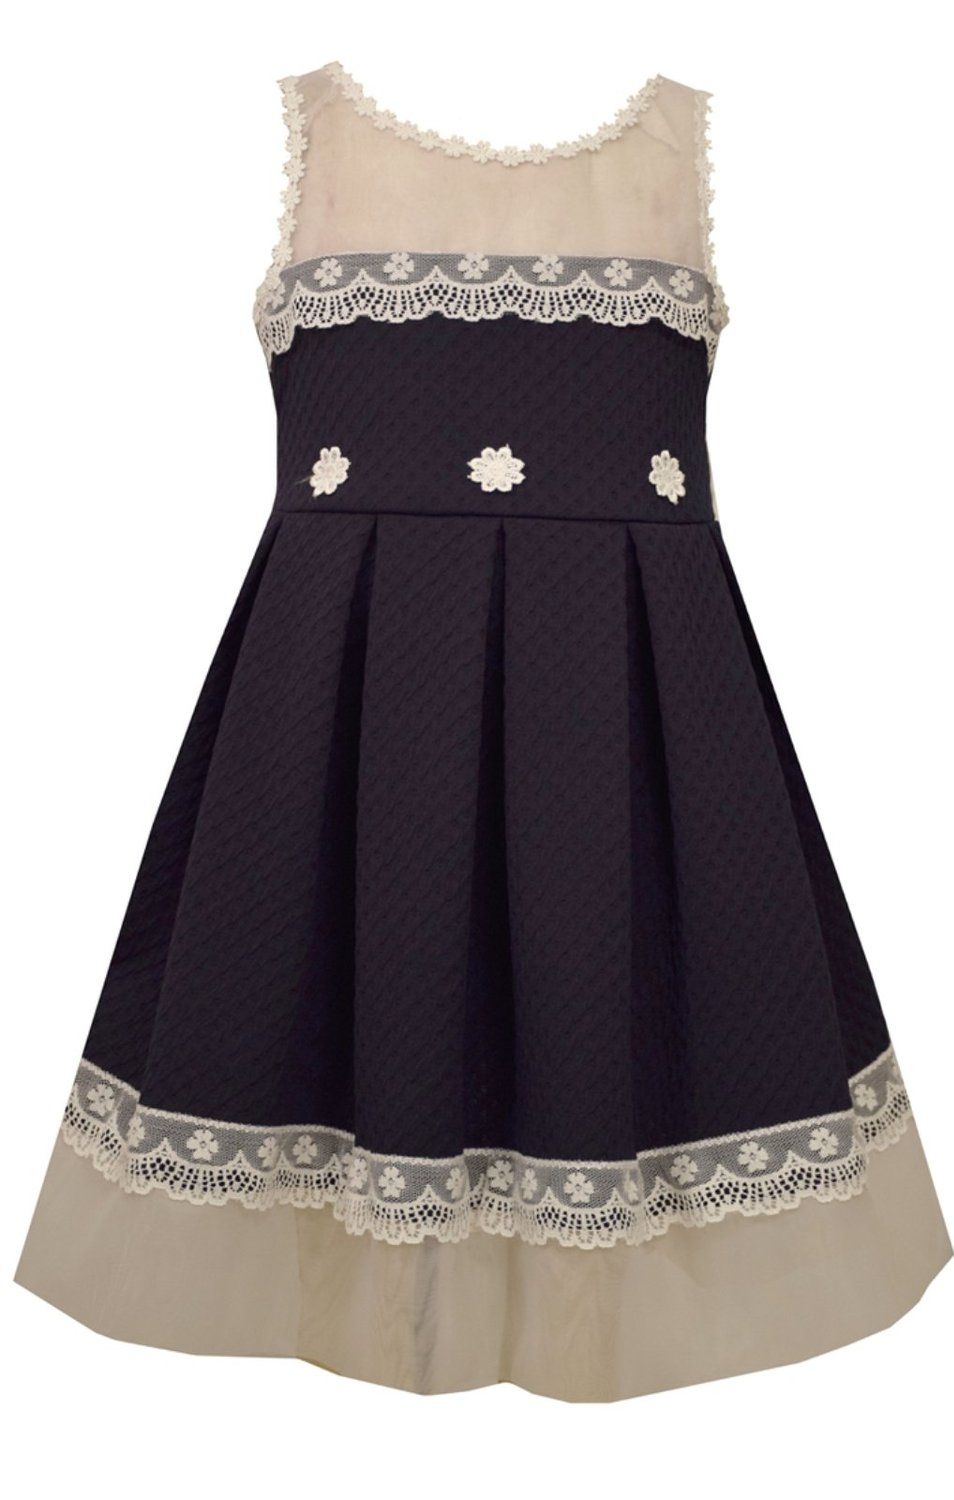 Bonnie Jean Girls Knit To Lace Trimmed Lace Special